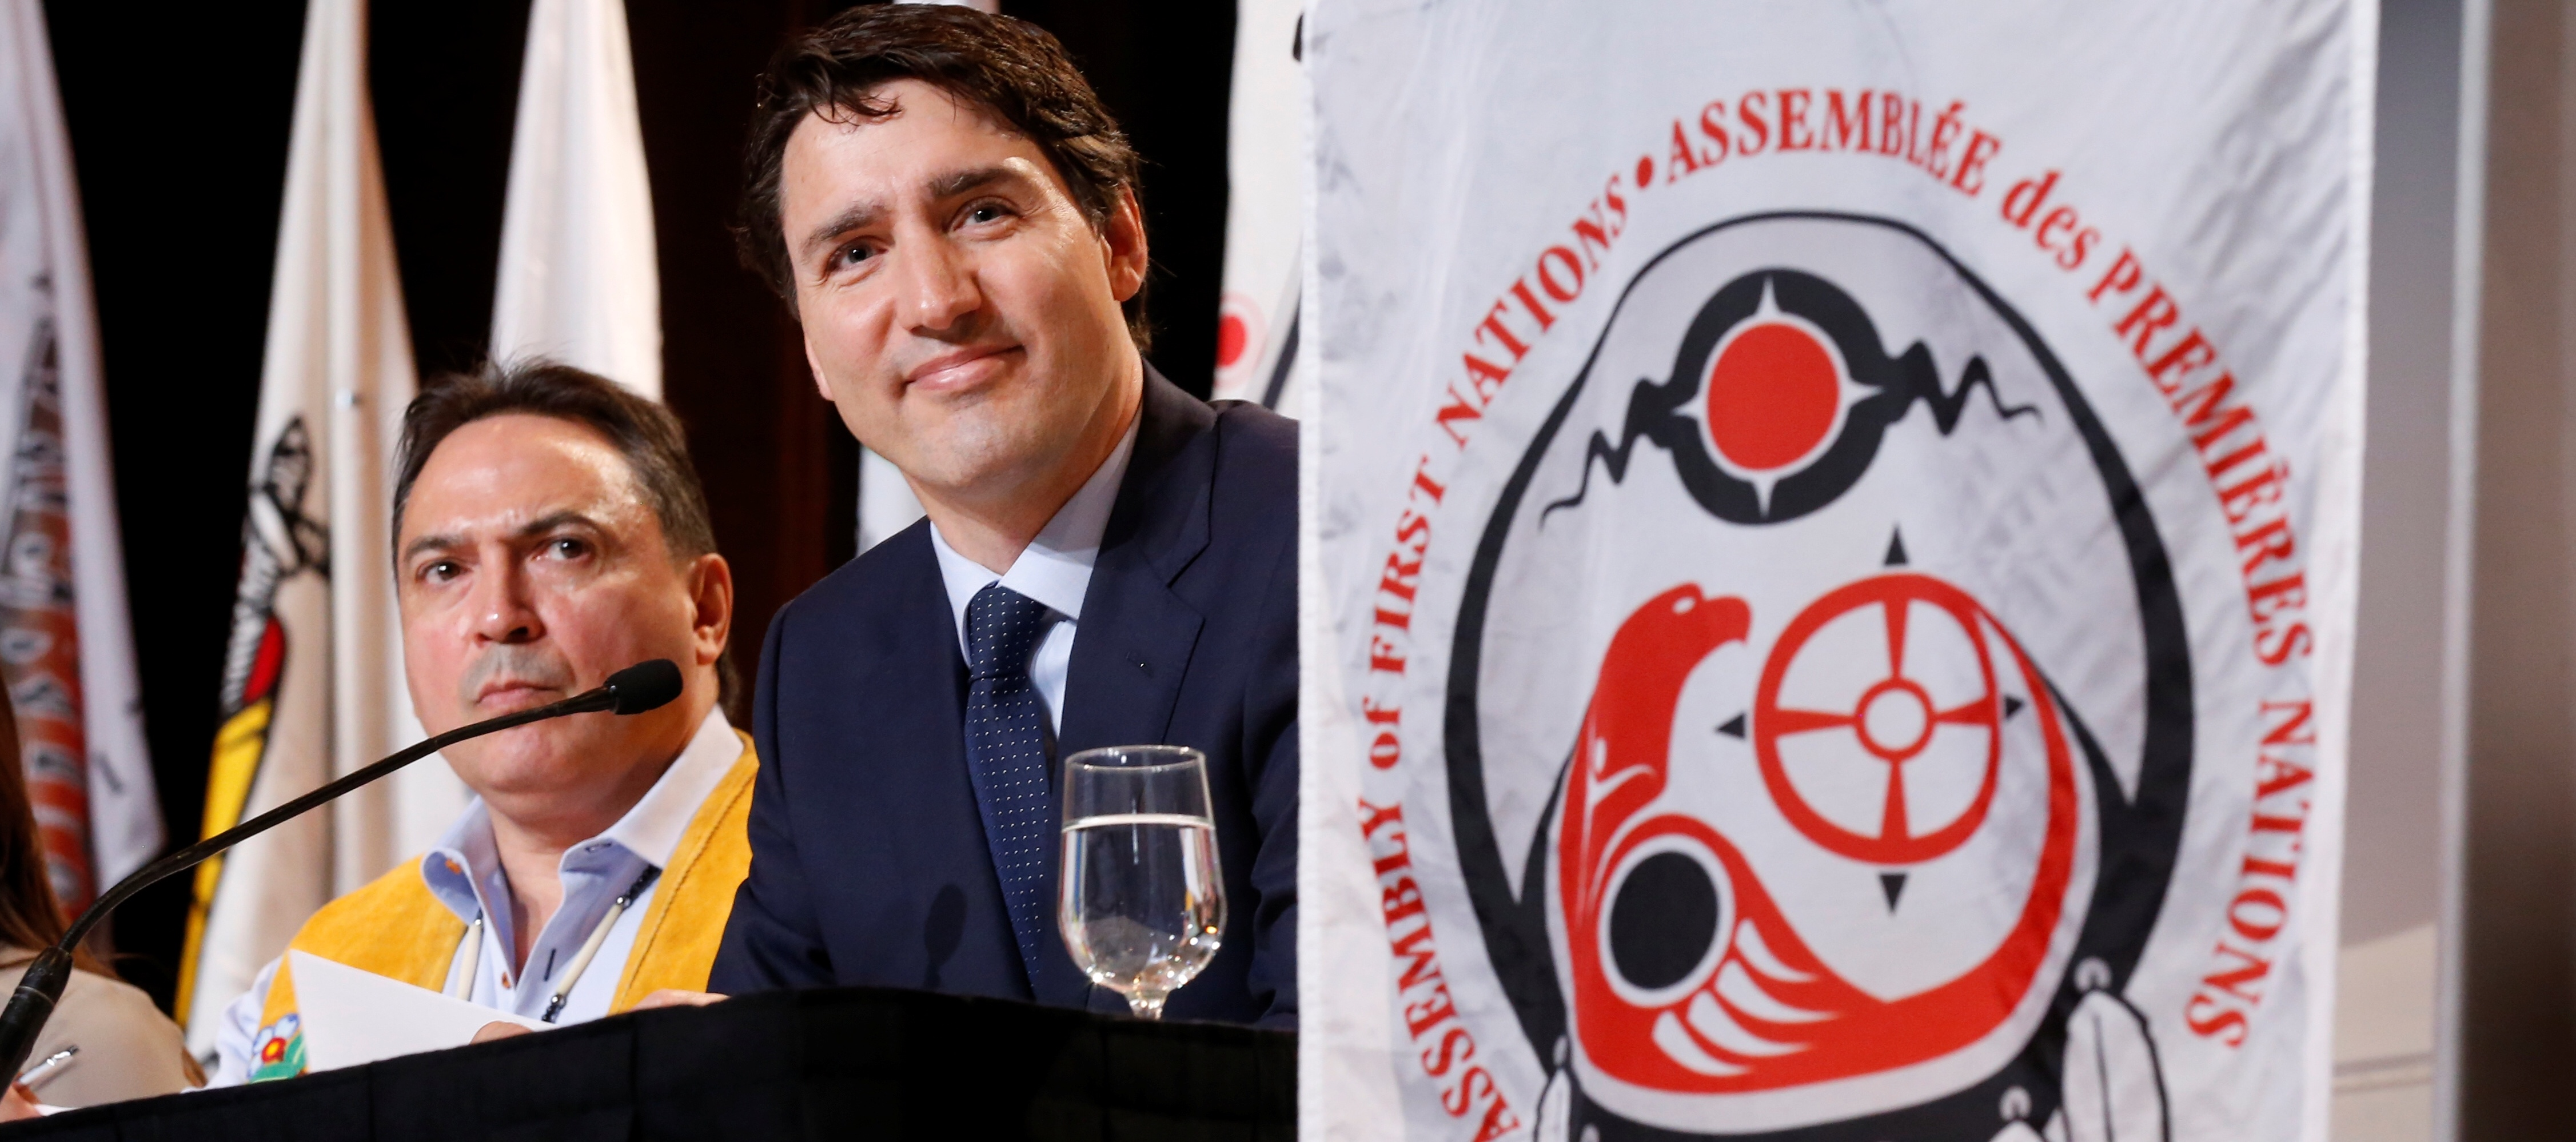 Canada's Prime Minister Justin Trudeau and National Chief Perry Bellegarde attend the Assembly of First Nations, Special Chiefs Assembly in Gatineau, Quebec, Canada, May 2, 2018. REUTERS/Chris Wattie - RC1E4F612FC0